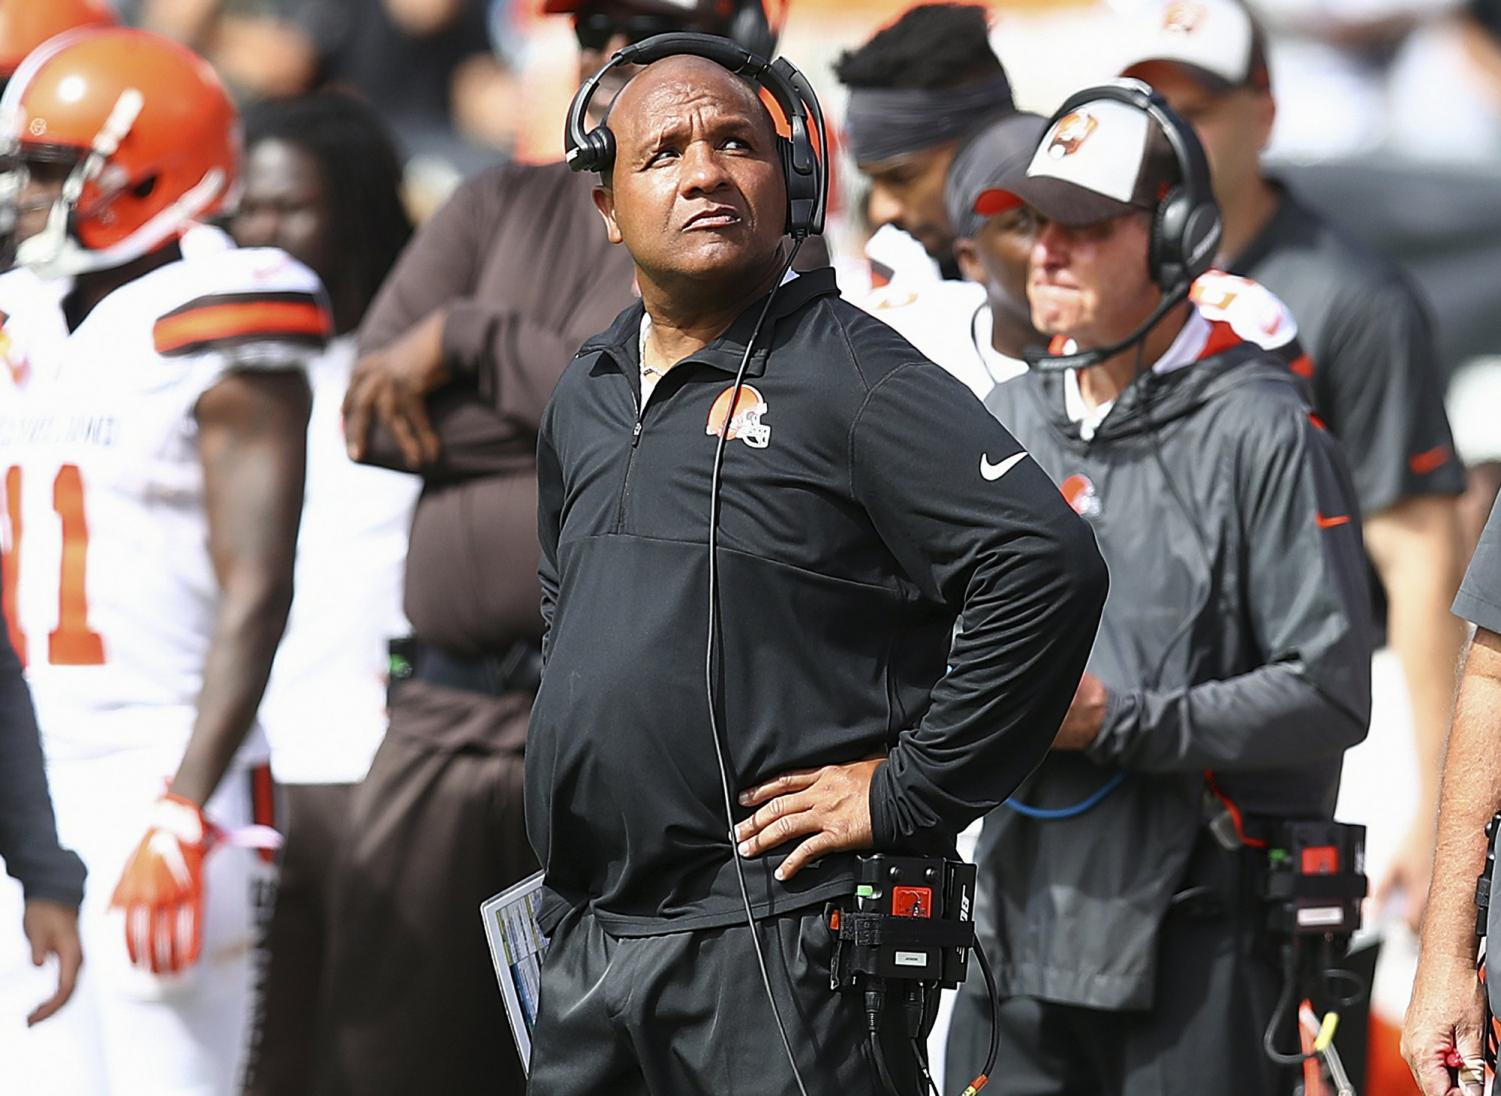 Cleveland Browns head coach Hue Jackson watches from the sideline during the first half of an NFL football game against the Oakland Raiders in Oakland, Calif., Sunday, Sept. 30, 2018.